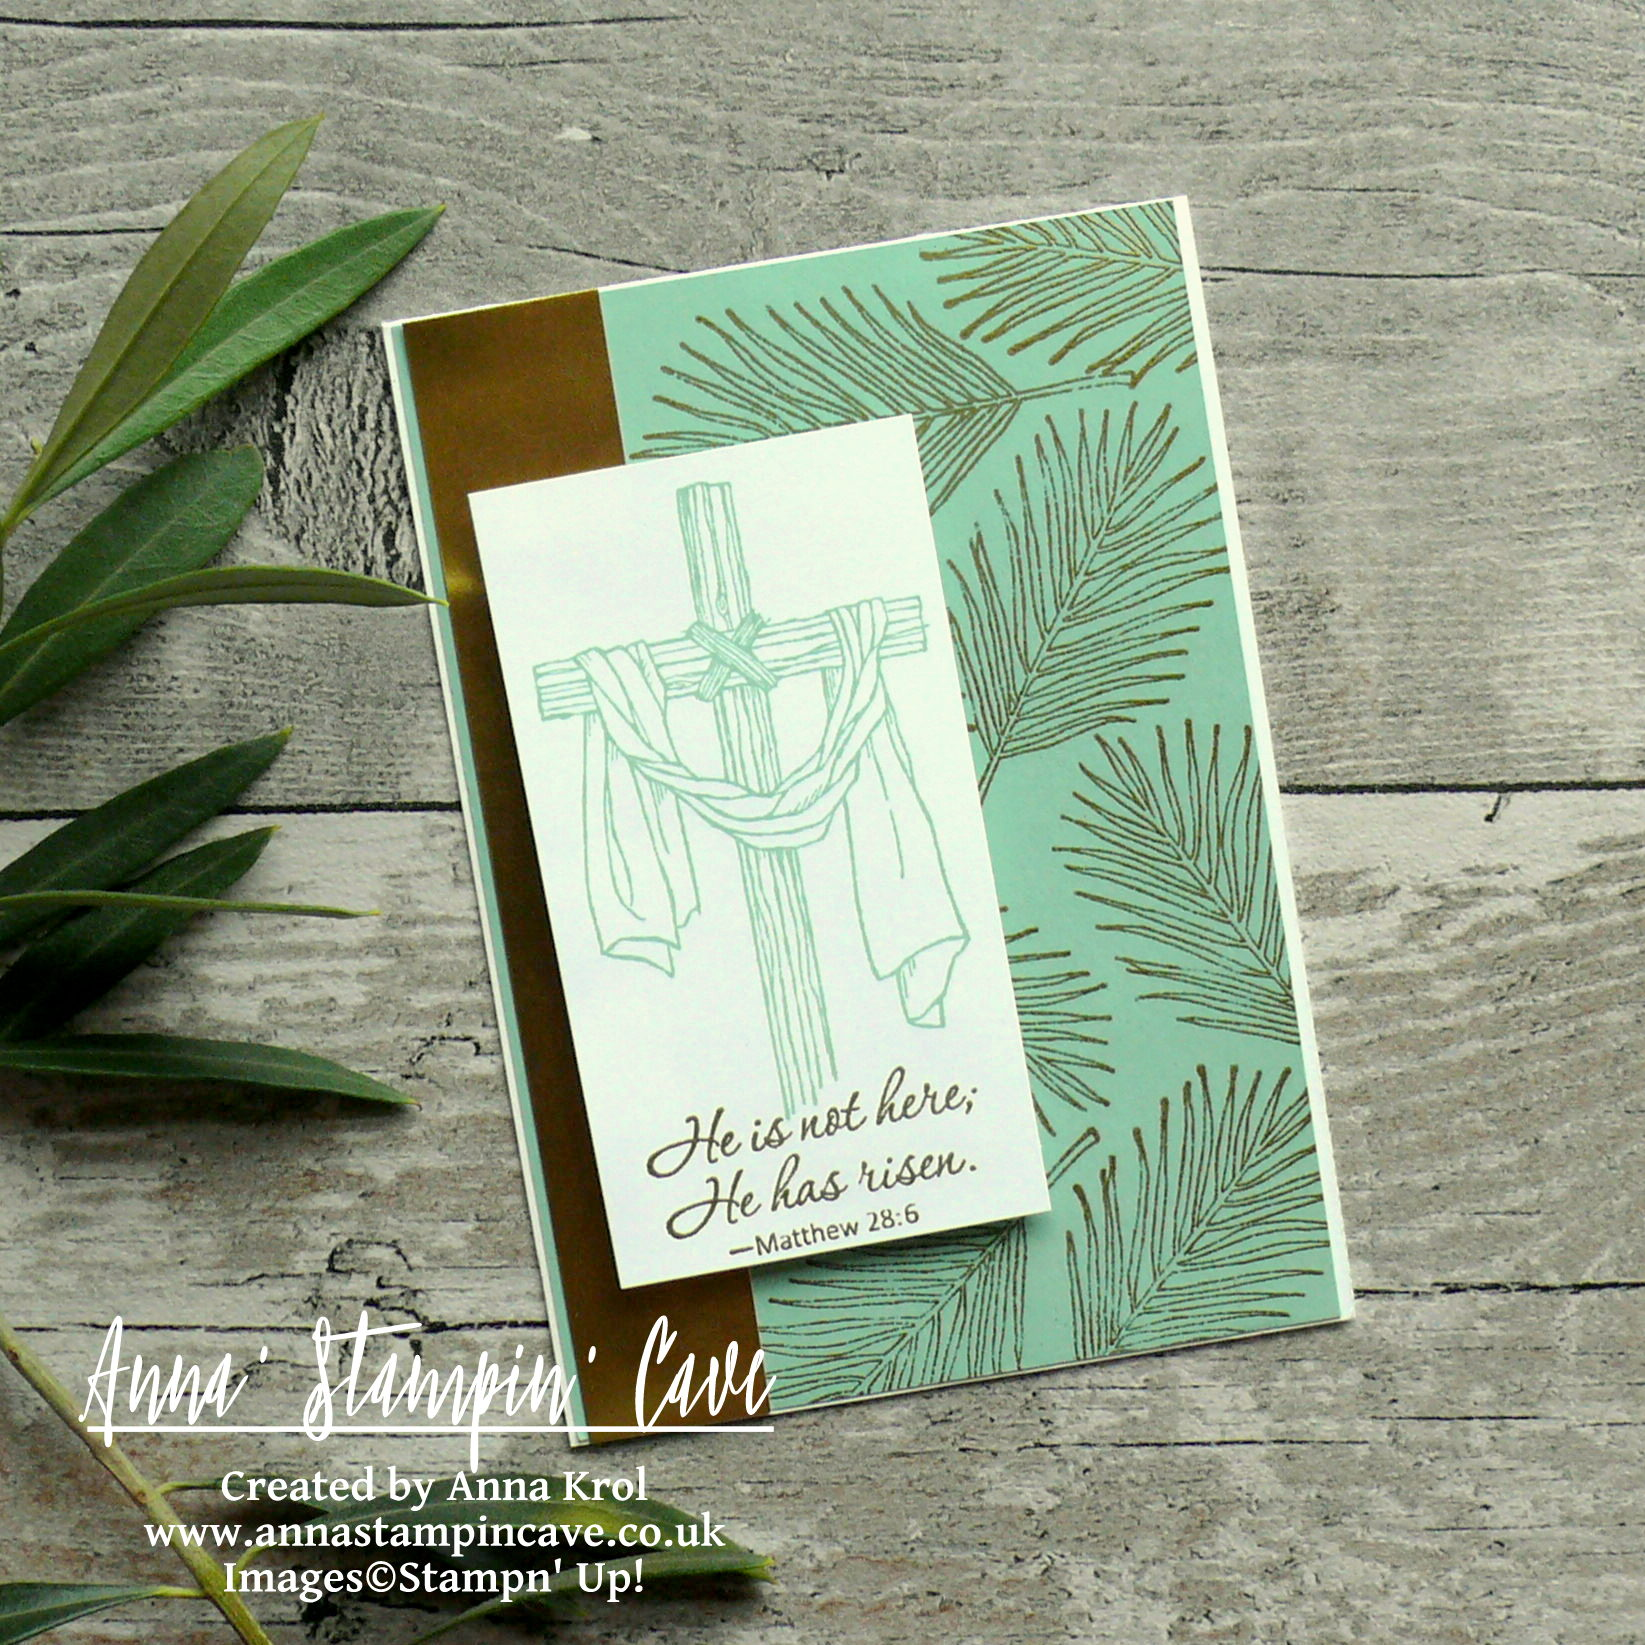 Anna' Stampin' Cave_Stampin' Up! Easter Message Stamp Set_Jesus Is Risen_Mint Macaron_gold foil_gold heat embossing_clean and simple